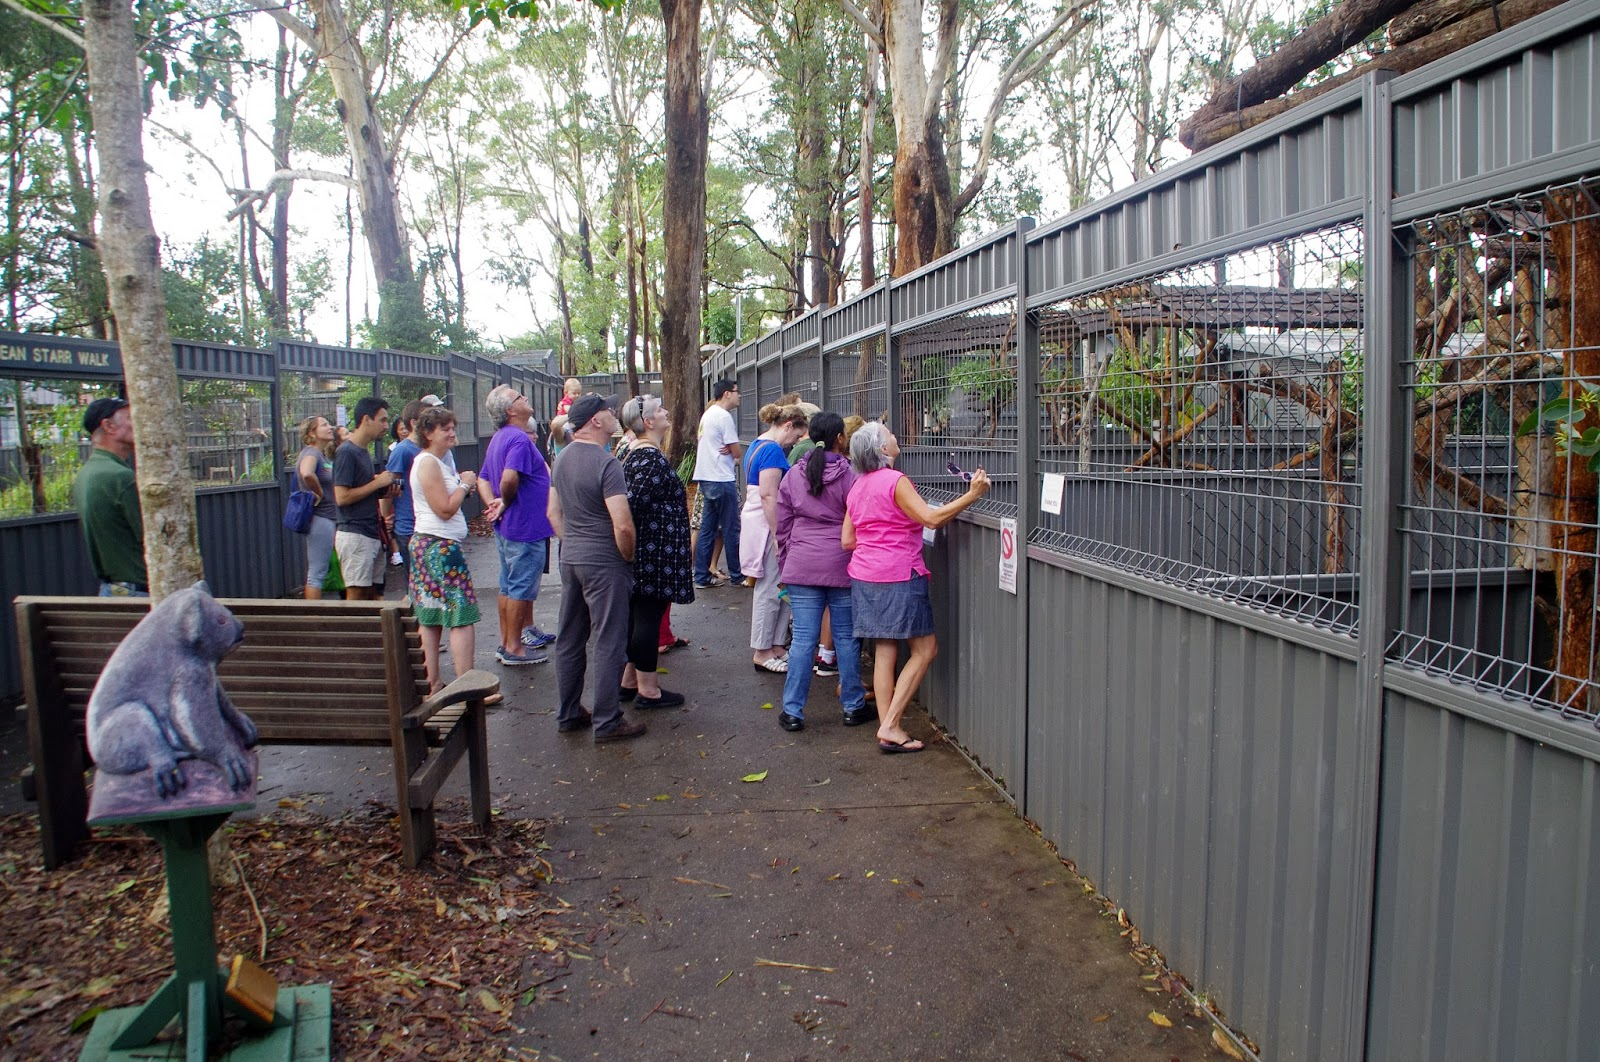 Port Macquarie Koala Hospital Guided Tour